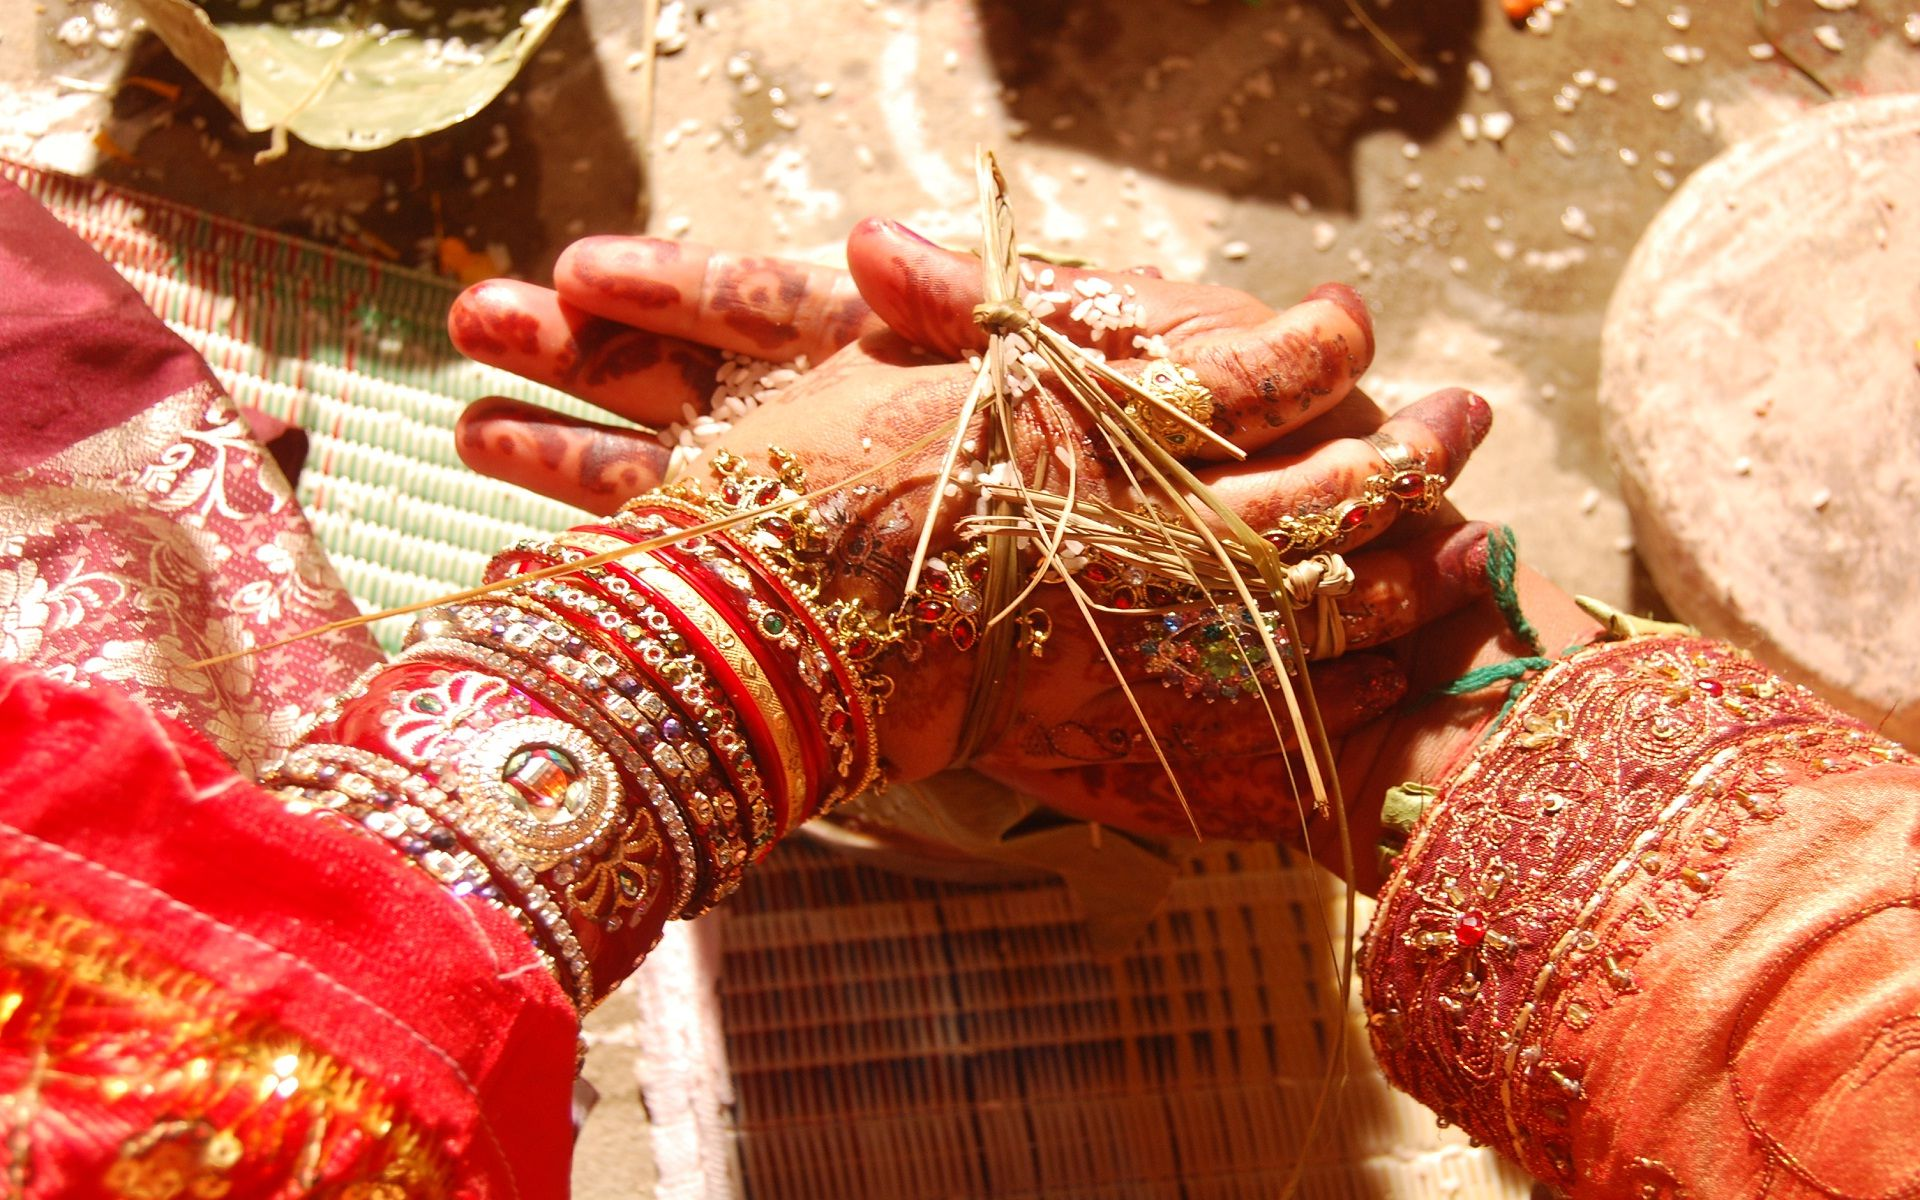 Gift ideas for an Indian bride and groom Maharaja